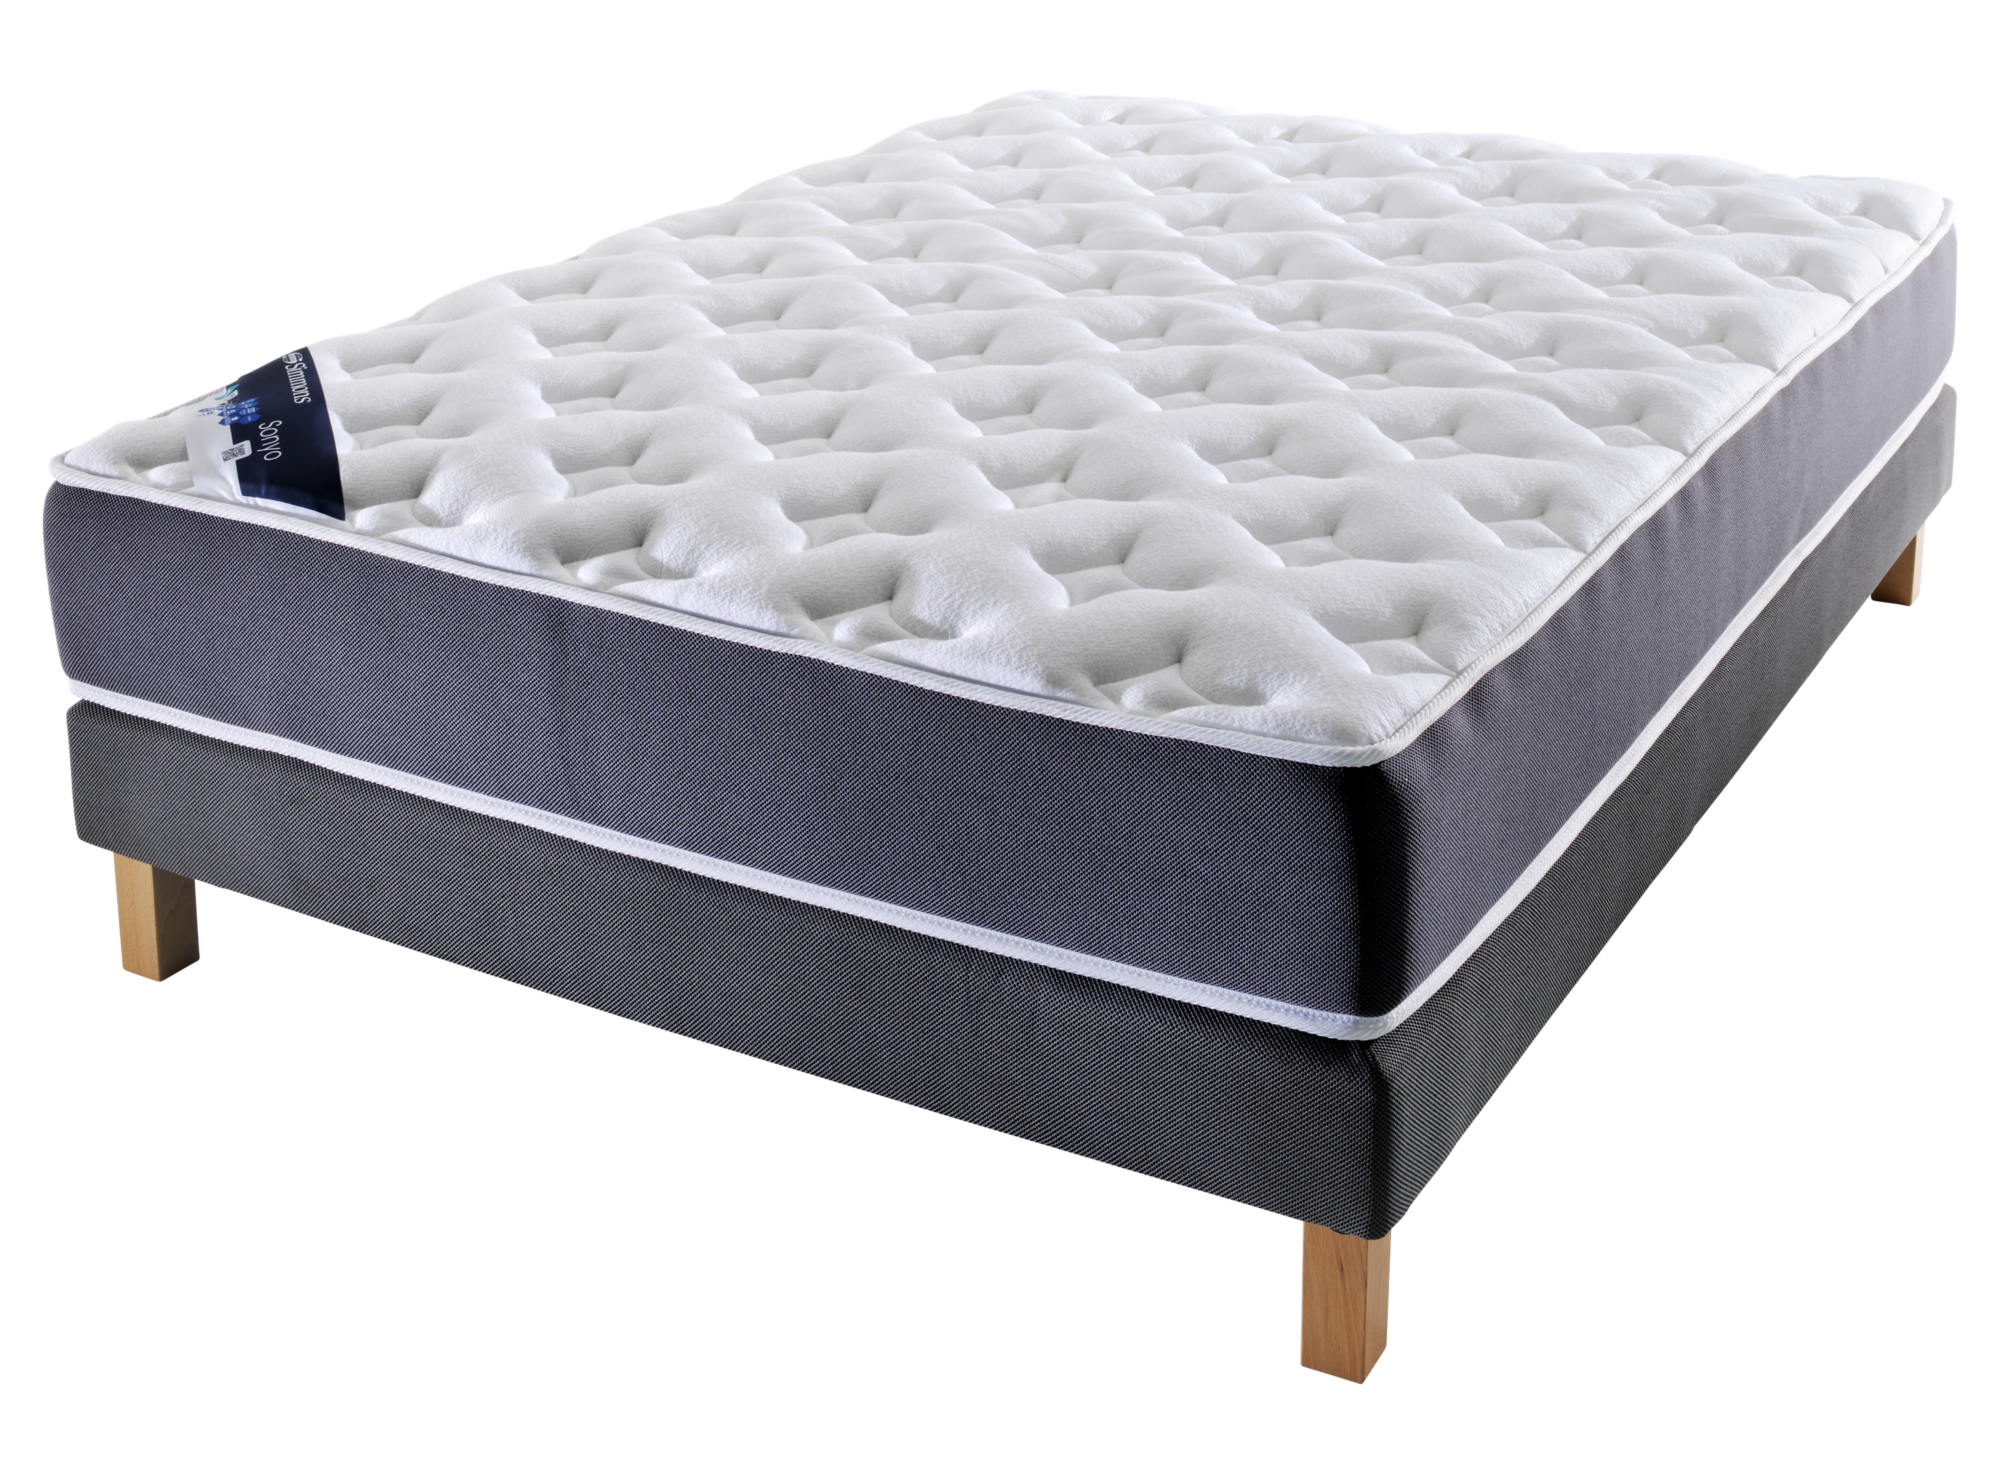 matelas a ressort ensach matelas ressort ensache luxe. Black Bedroom Furniture Sets. Home Design Ideas